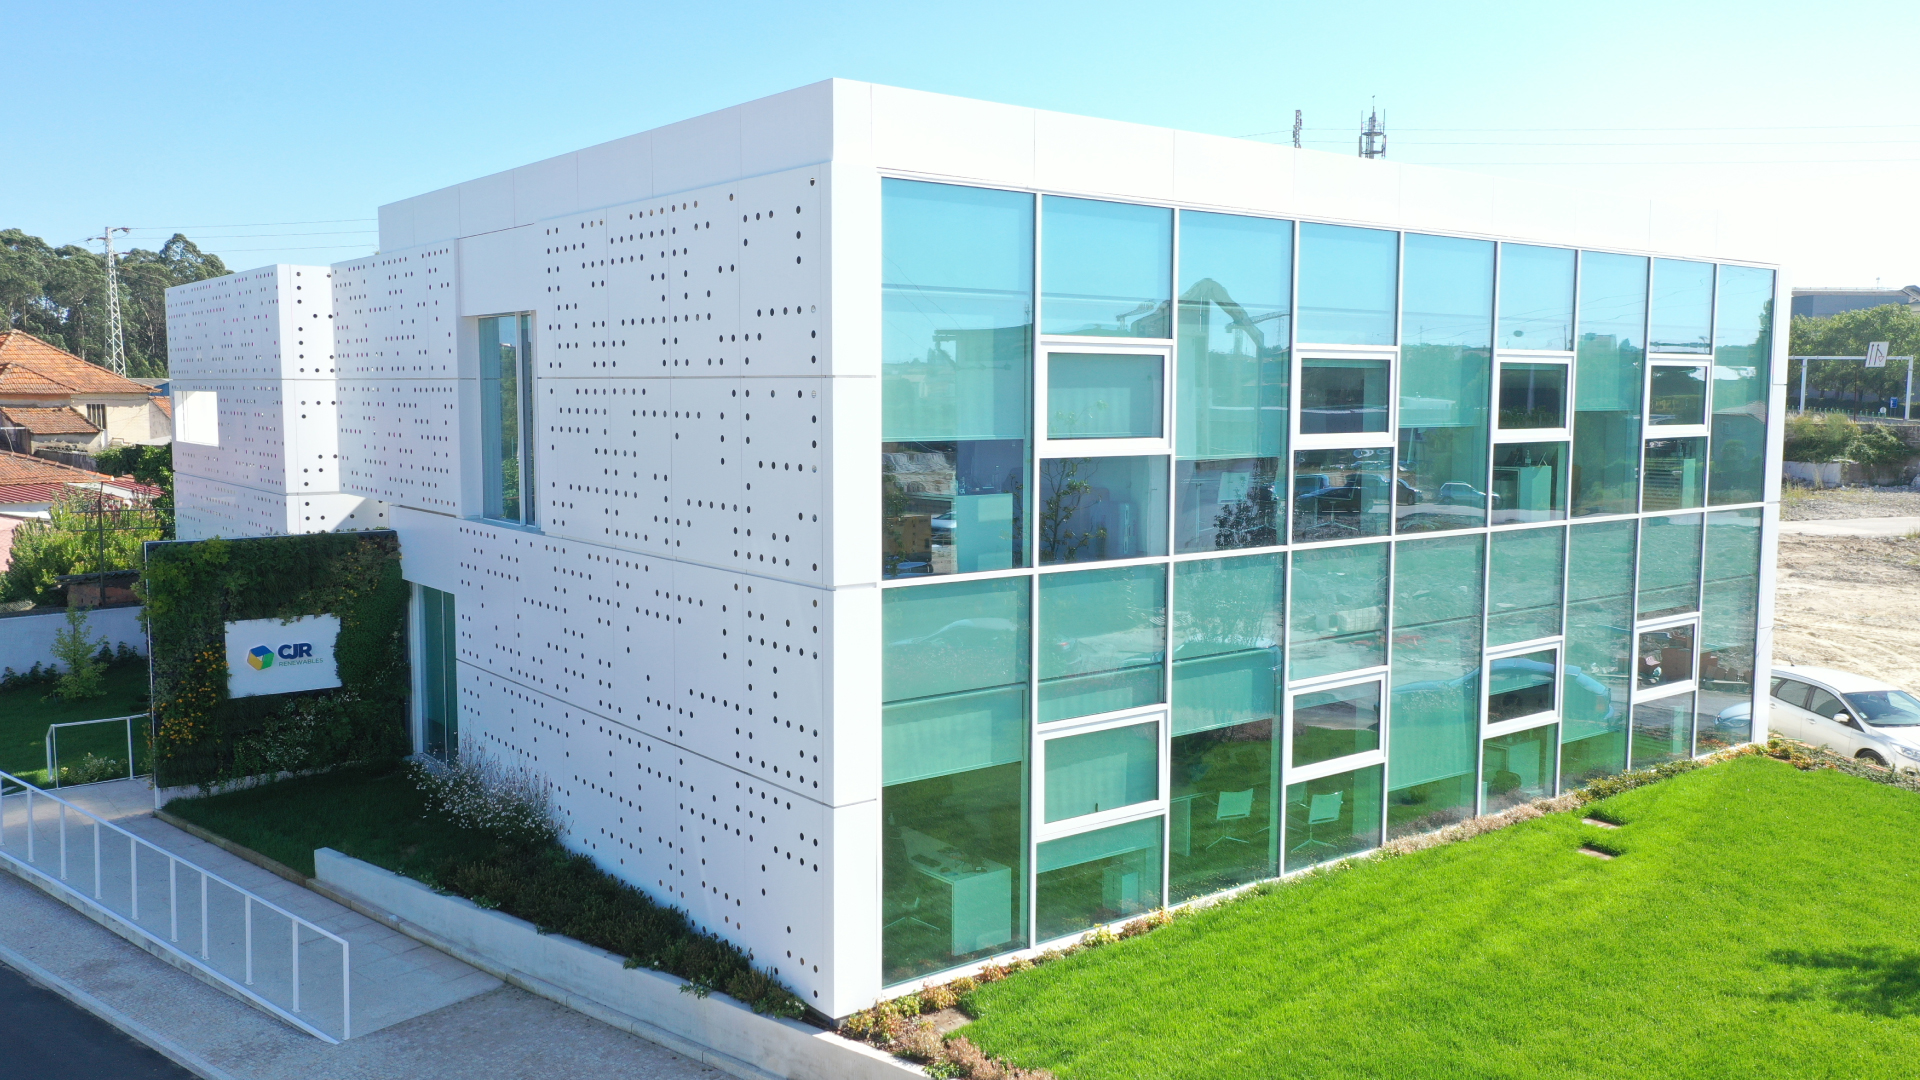 CJR Renewables has a new office in Portugal 0